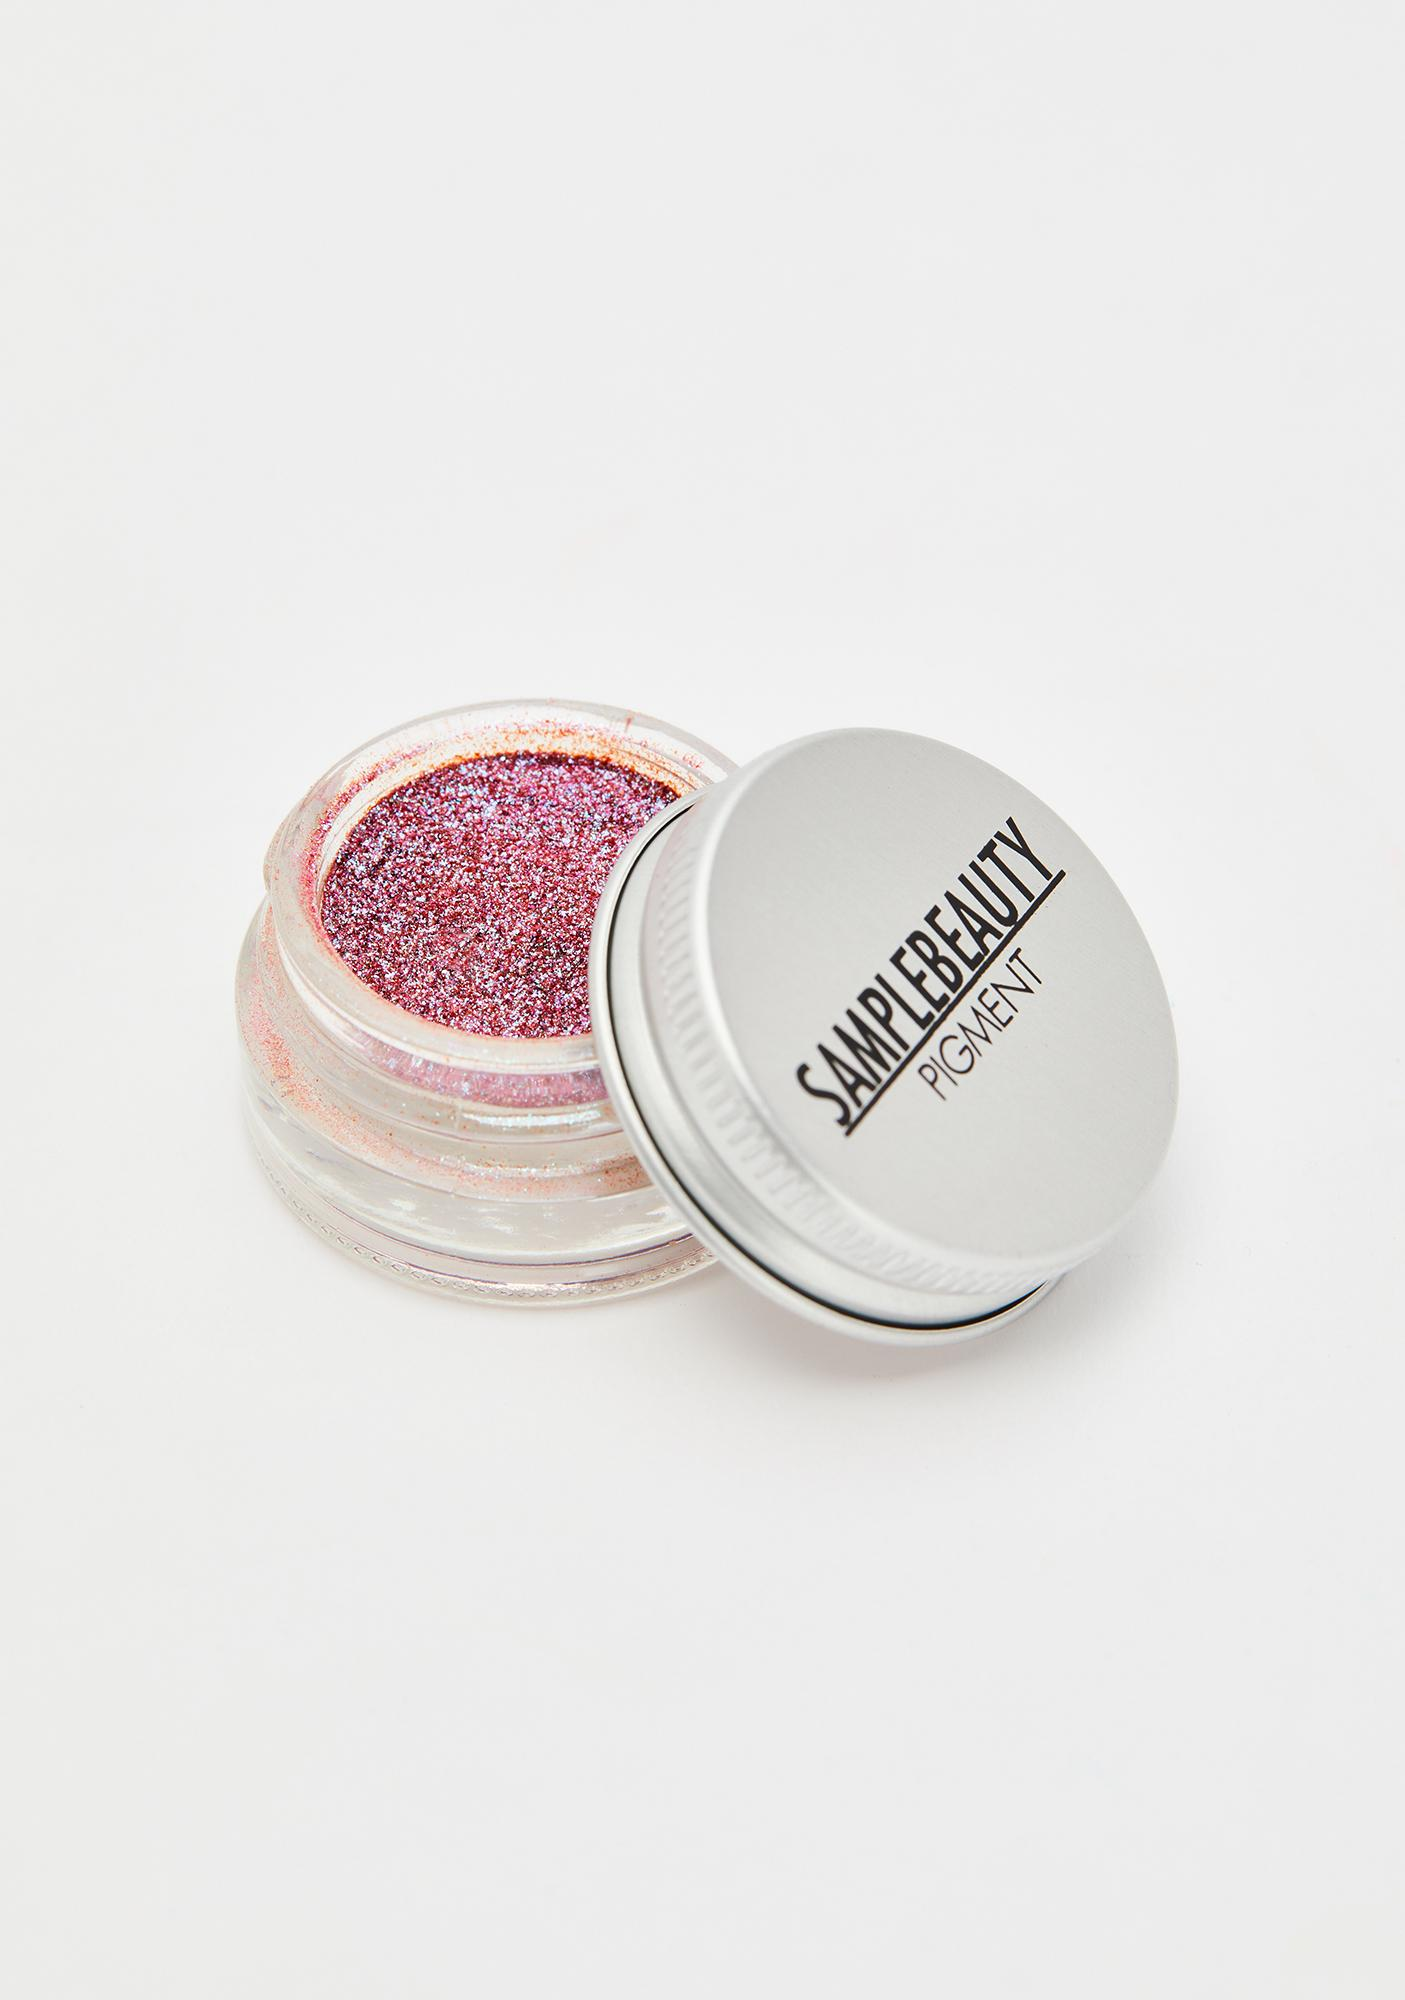 Sample Beauty CandyCane Loose Eyeshadow Pigment